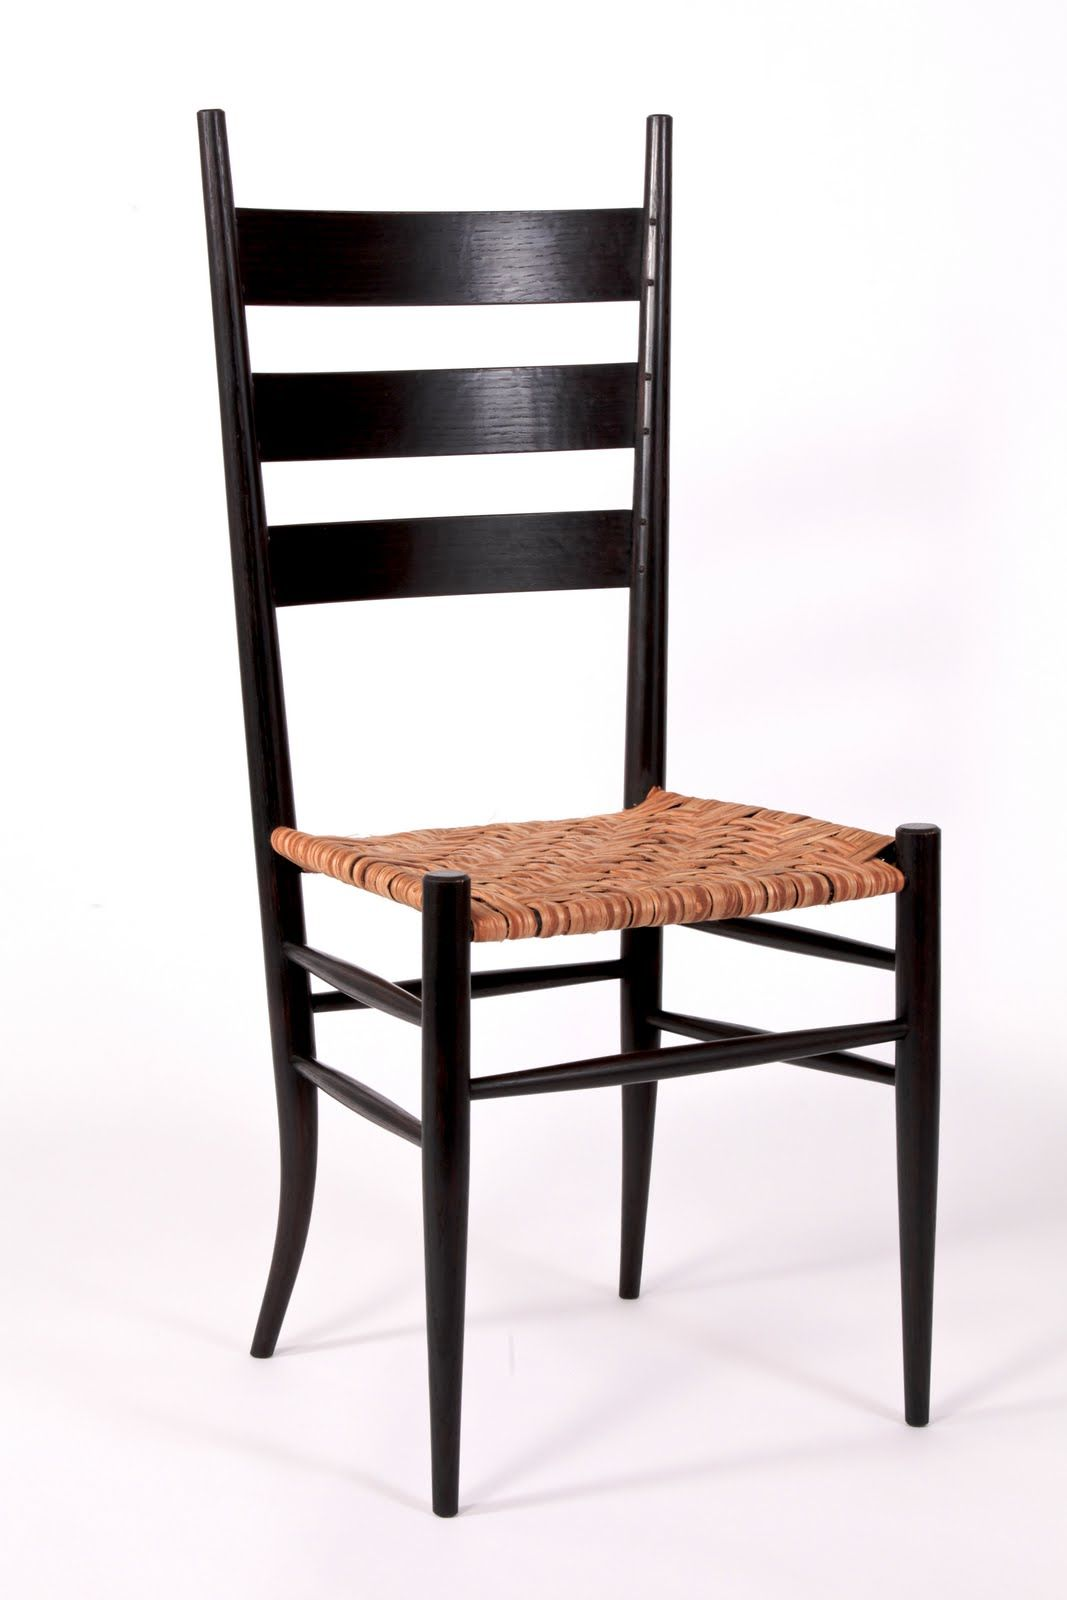 Tim Manney Chairmaker: Welcome.